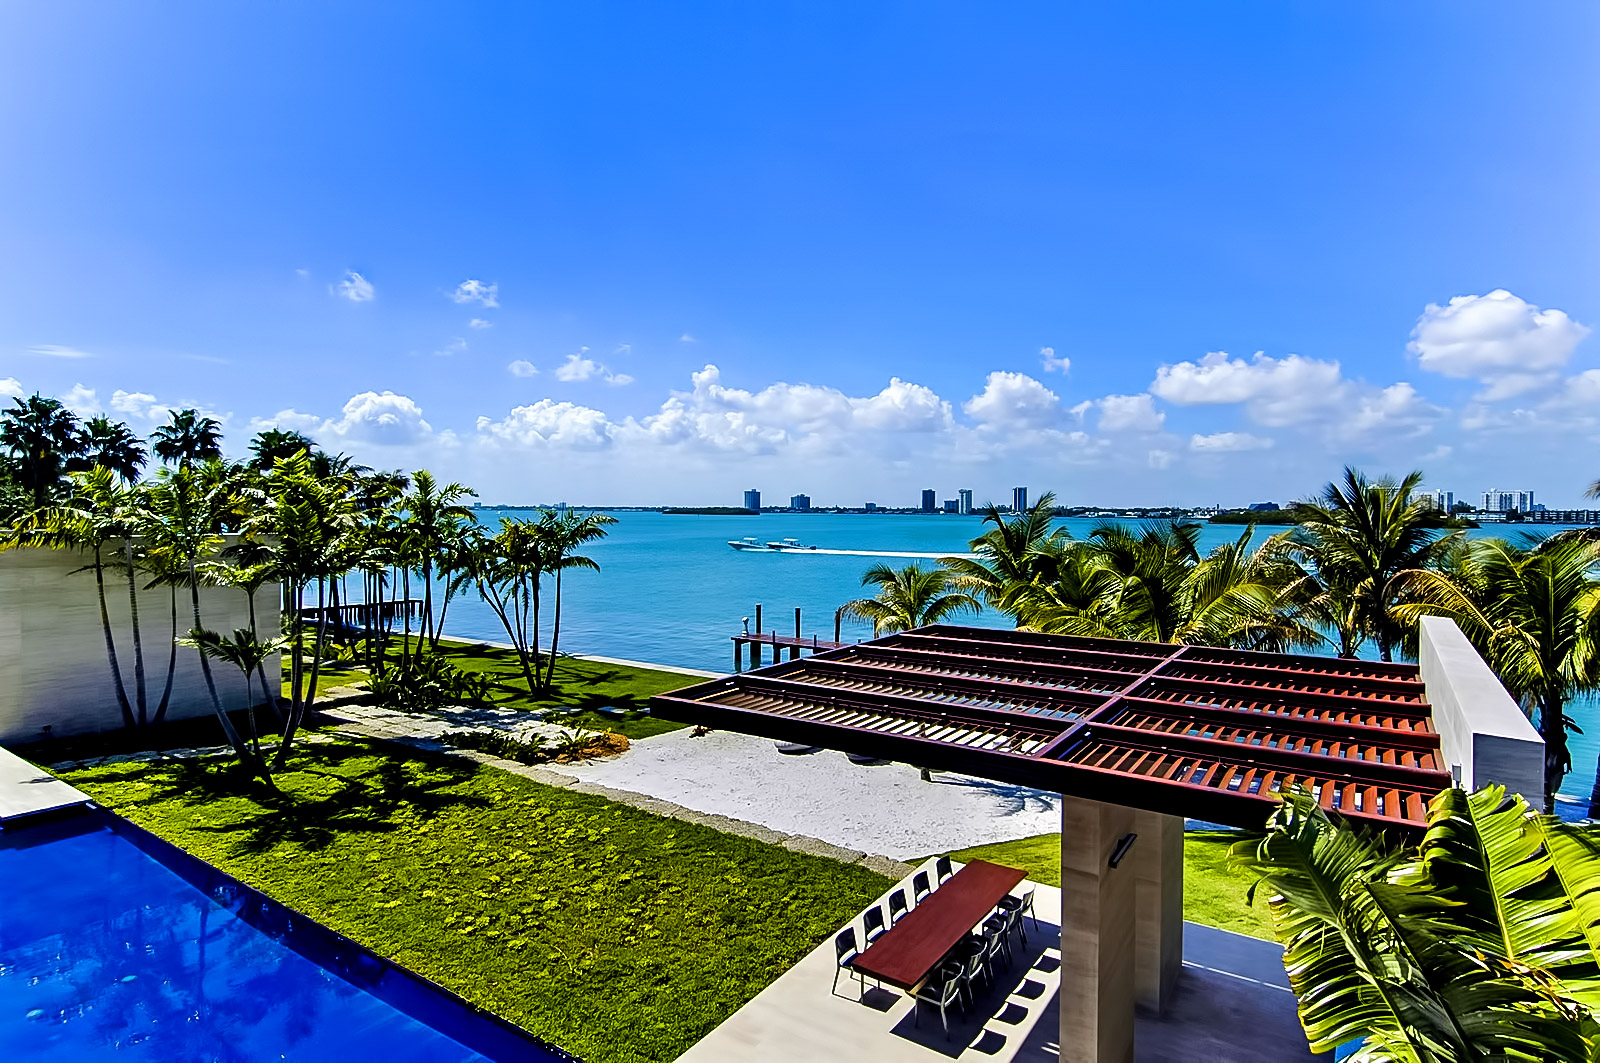 The Most Expensive Home Sold on Record in Miami-Dade, Florida – 3 Indian Creek Island Estate